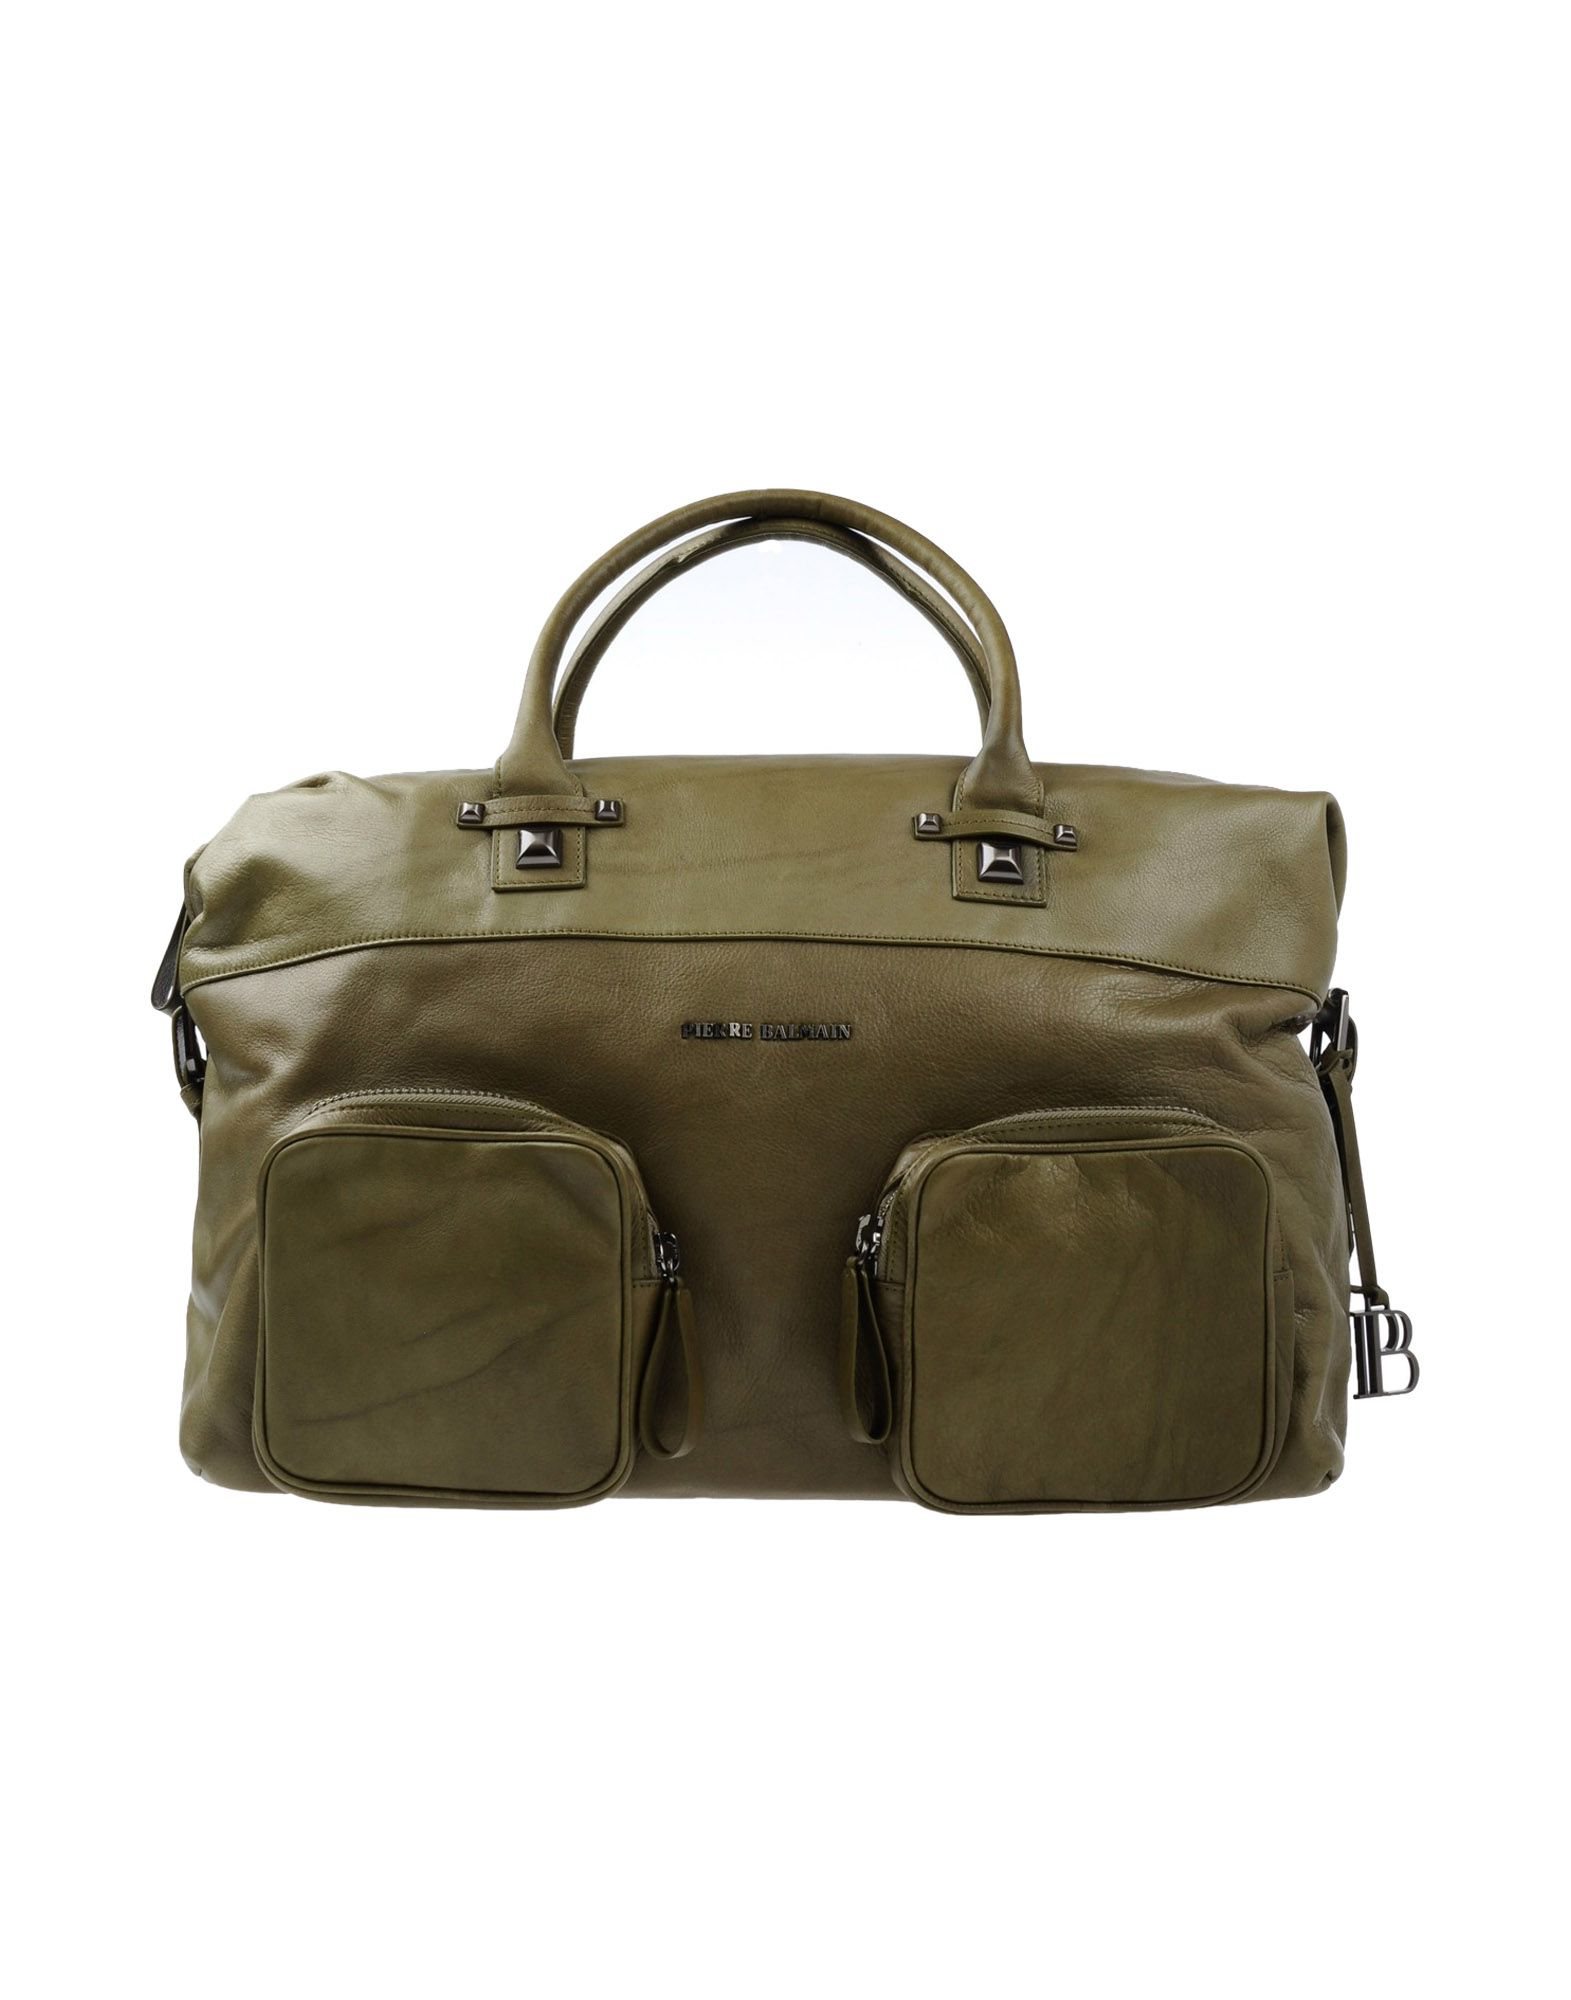 Find great deals on eBay for balmain bag and dolce gabbana bag. Shop with confidence.